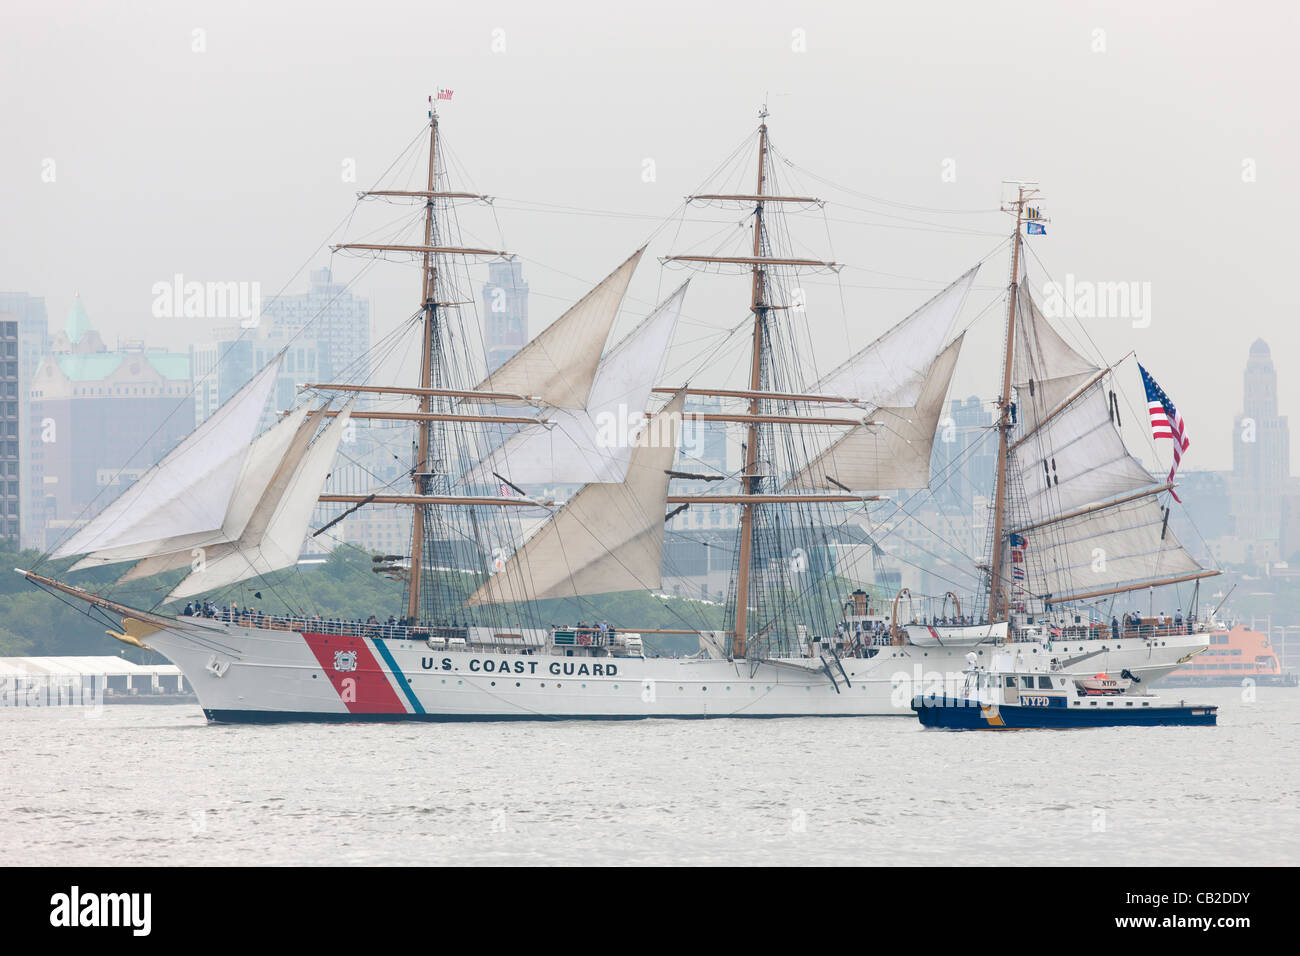 US Coast Guard Barque Eagle participates in the Parade of Sail on the Hudson River in New York City, USA on Wednesday, - Stock Image